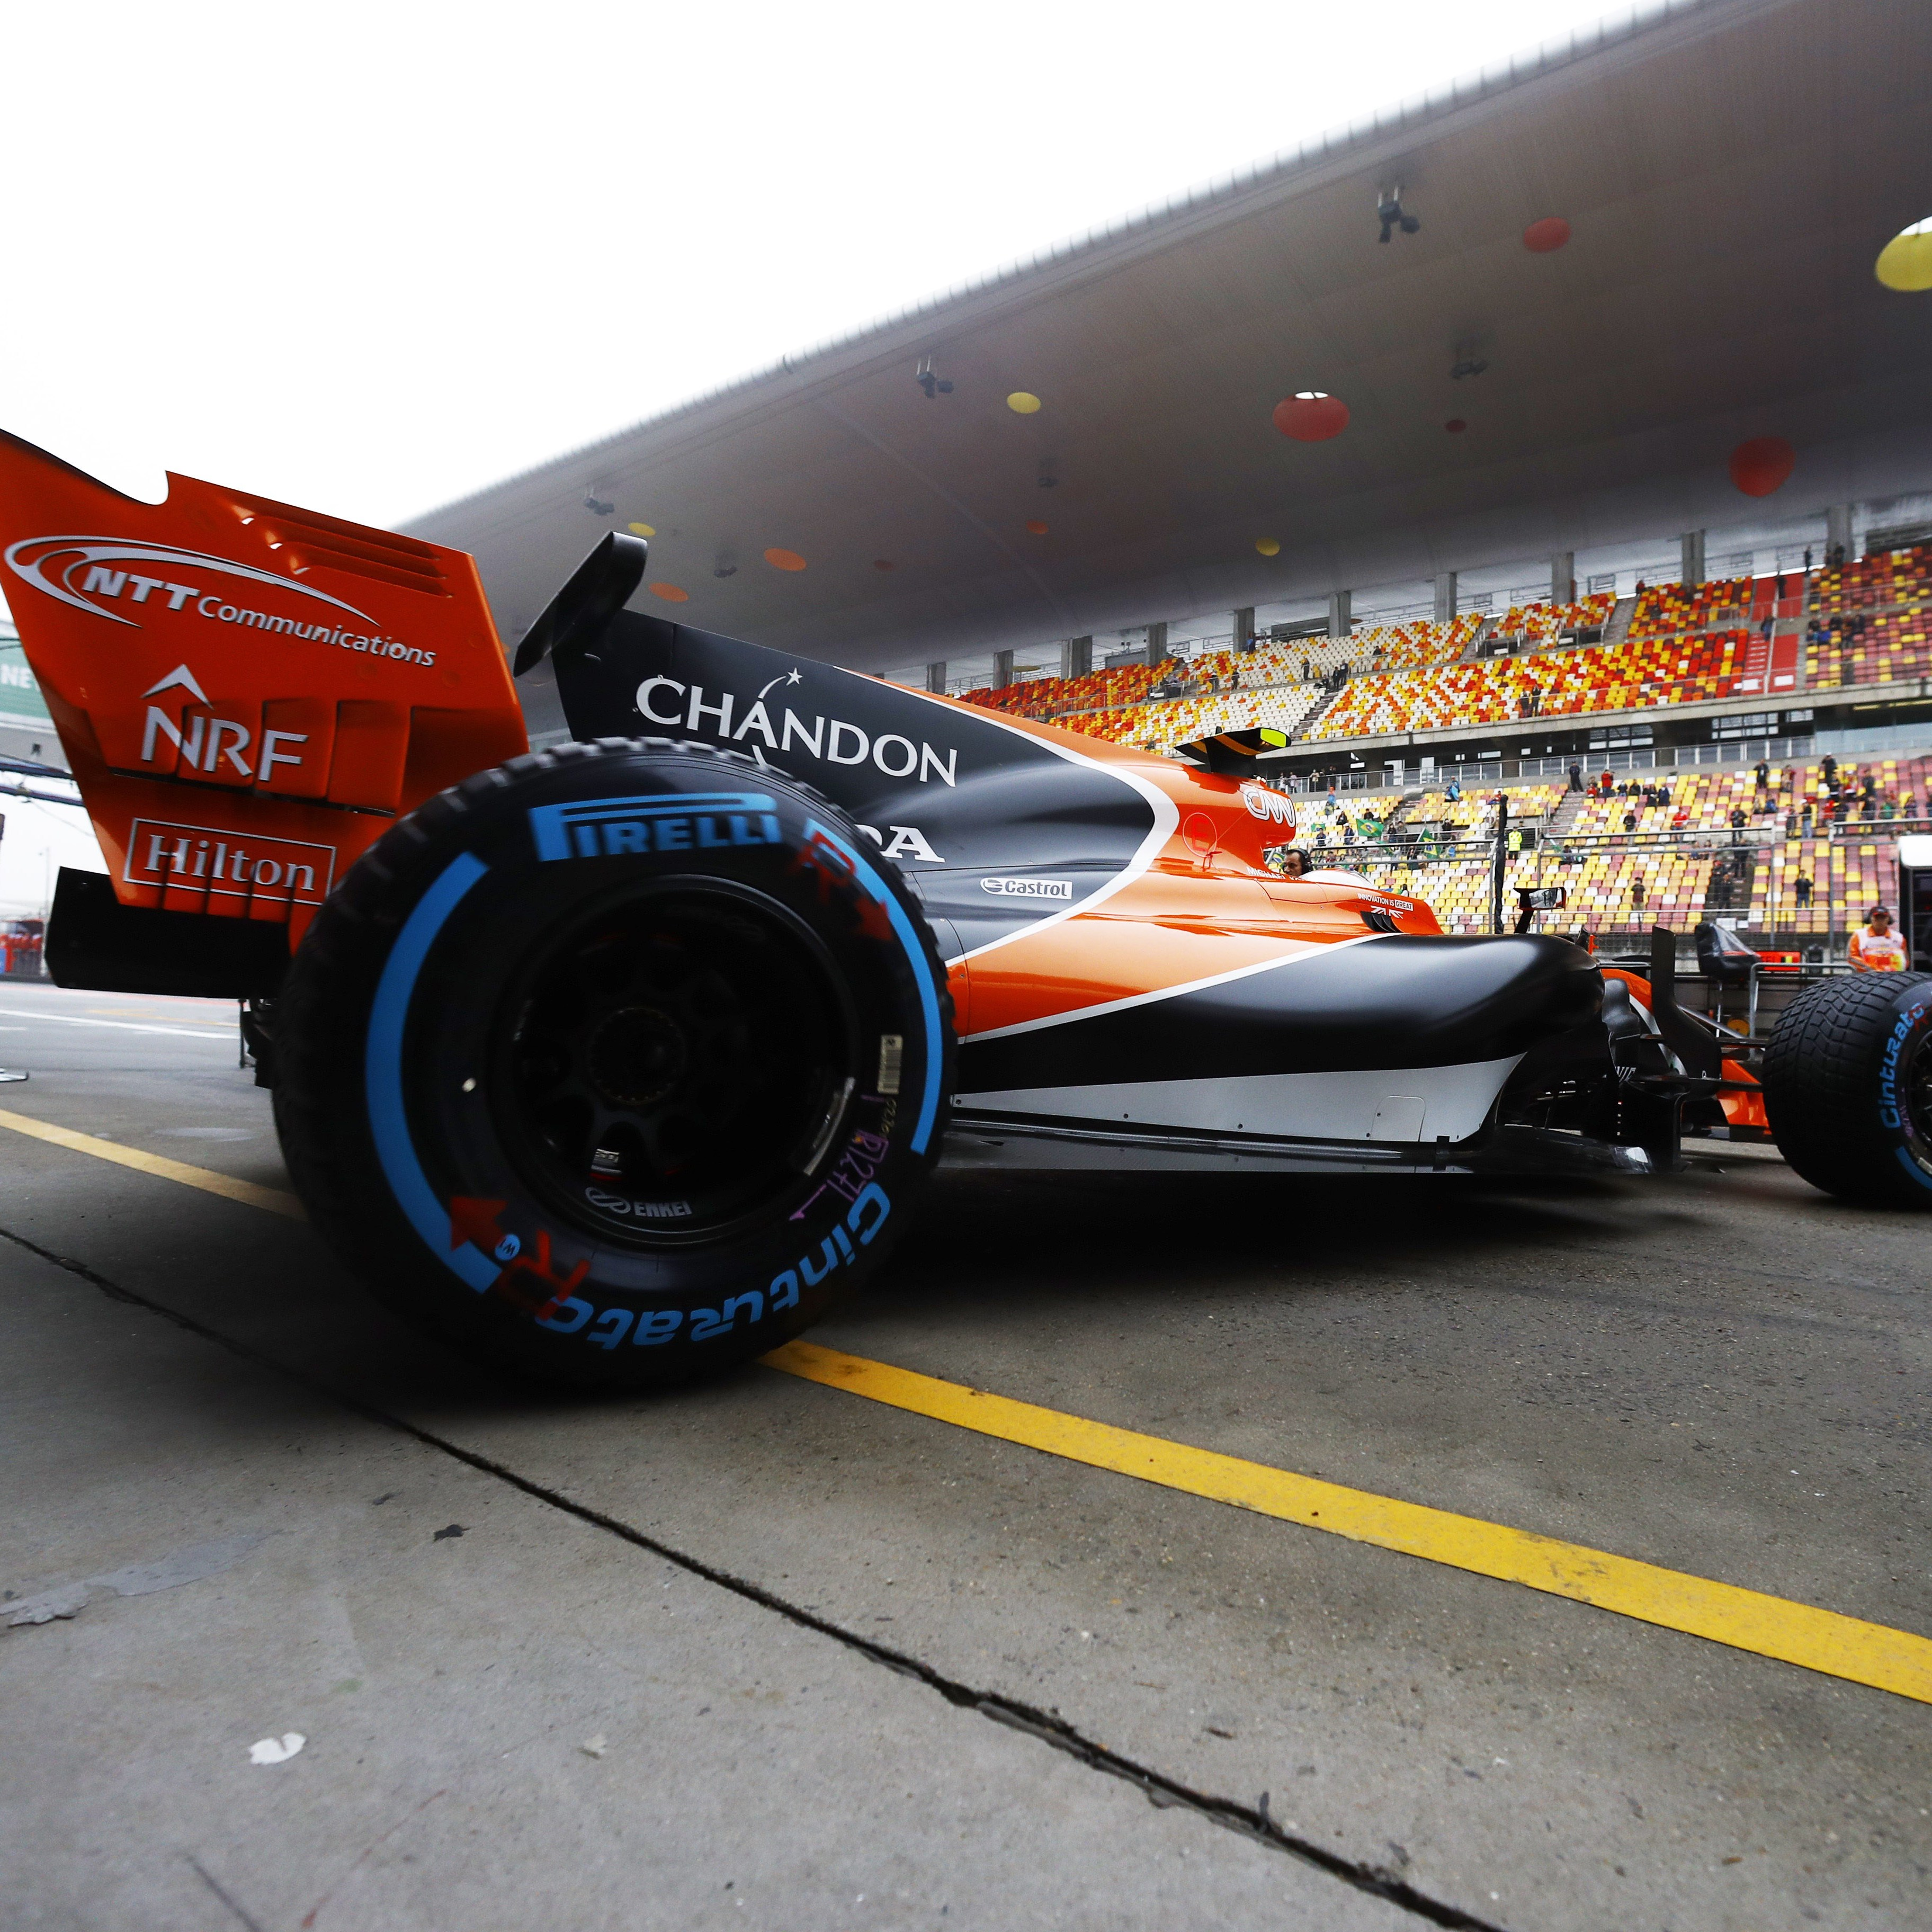 Shanghai Grand Prix Tickets and Hospitality